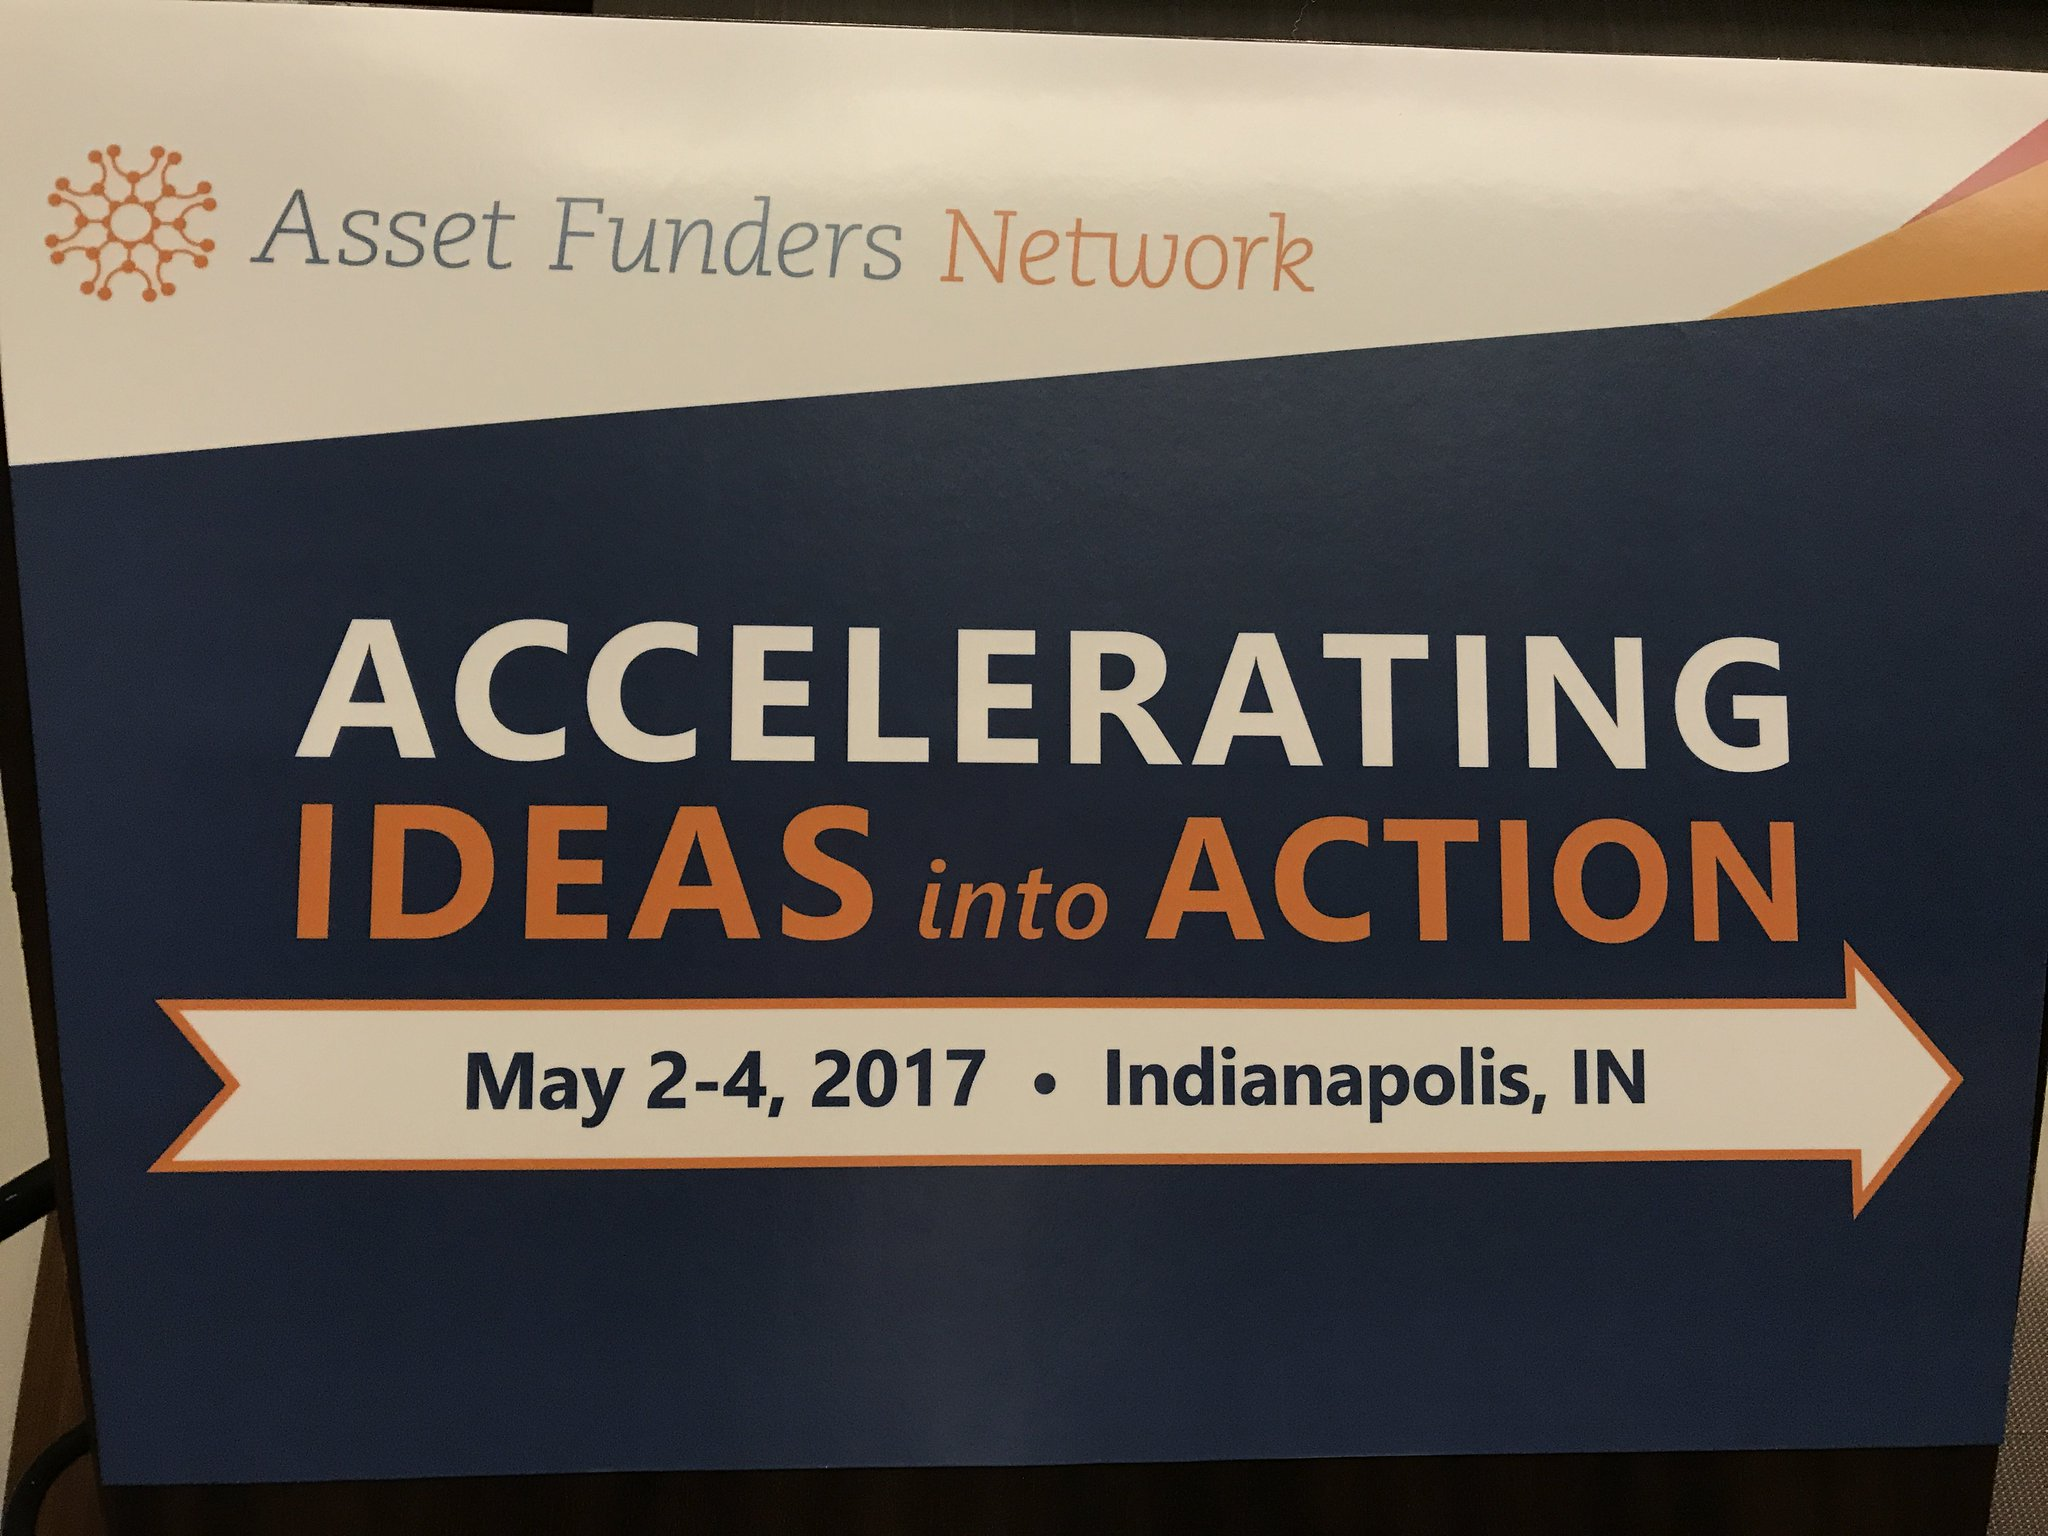 #ideasintoaction underway in Indy https://t.co/lVS8f9AxI4